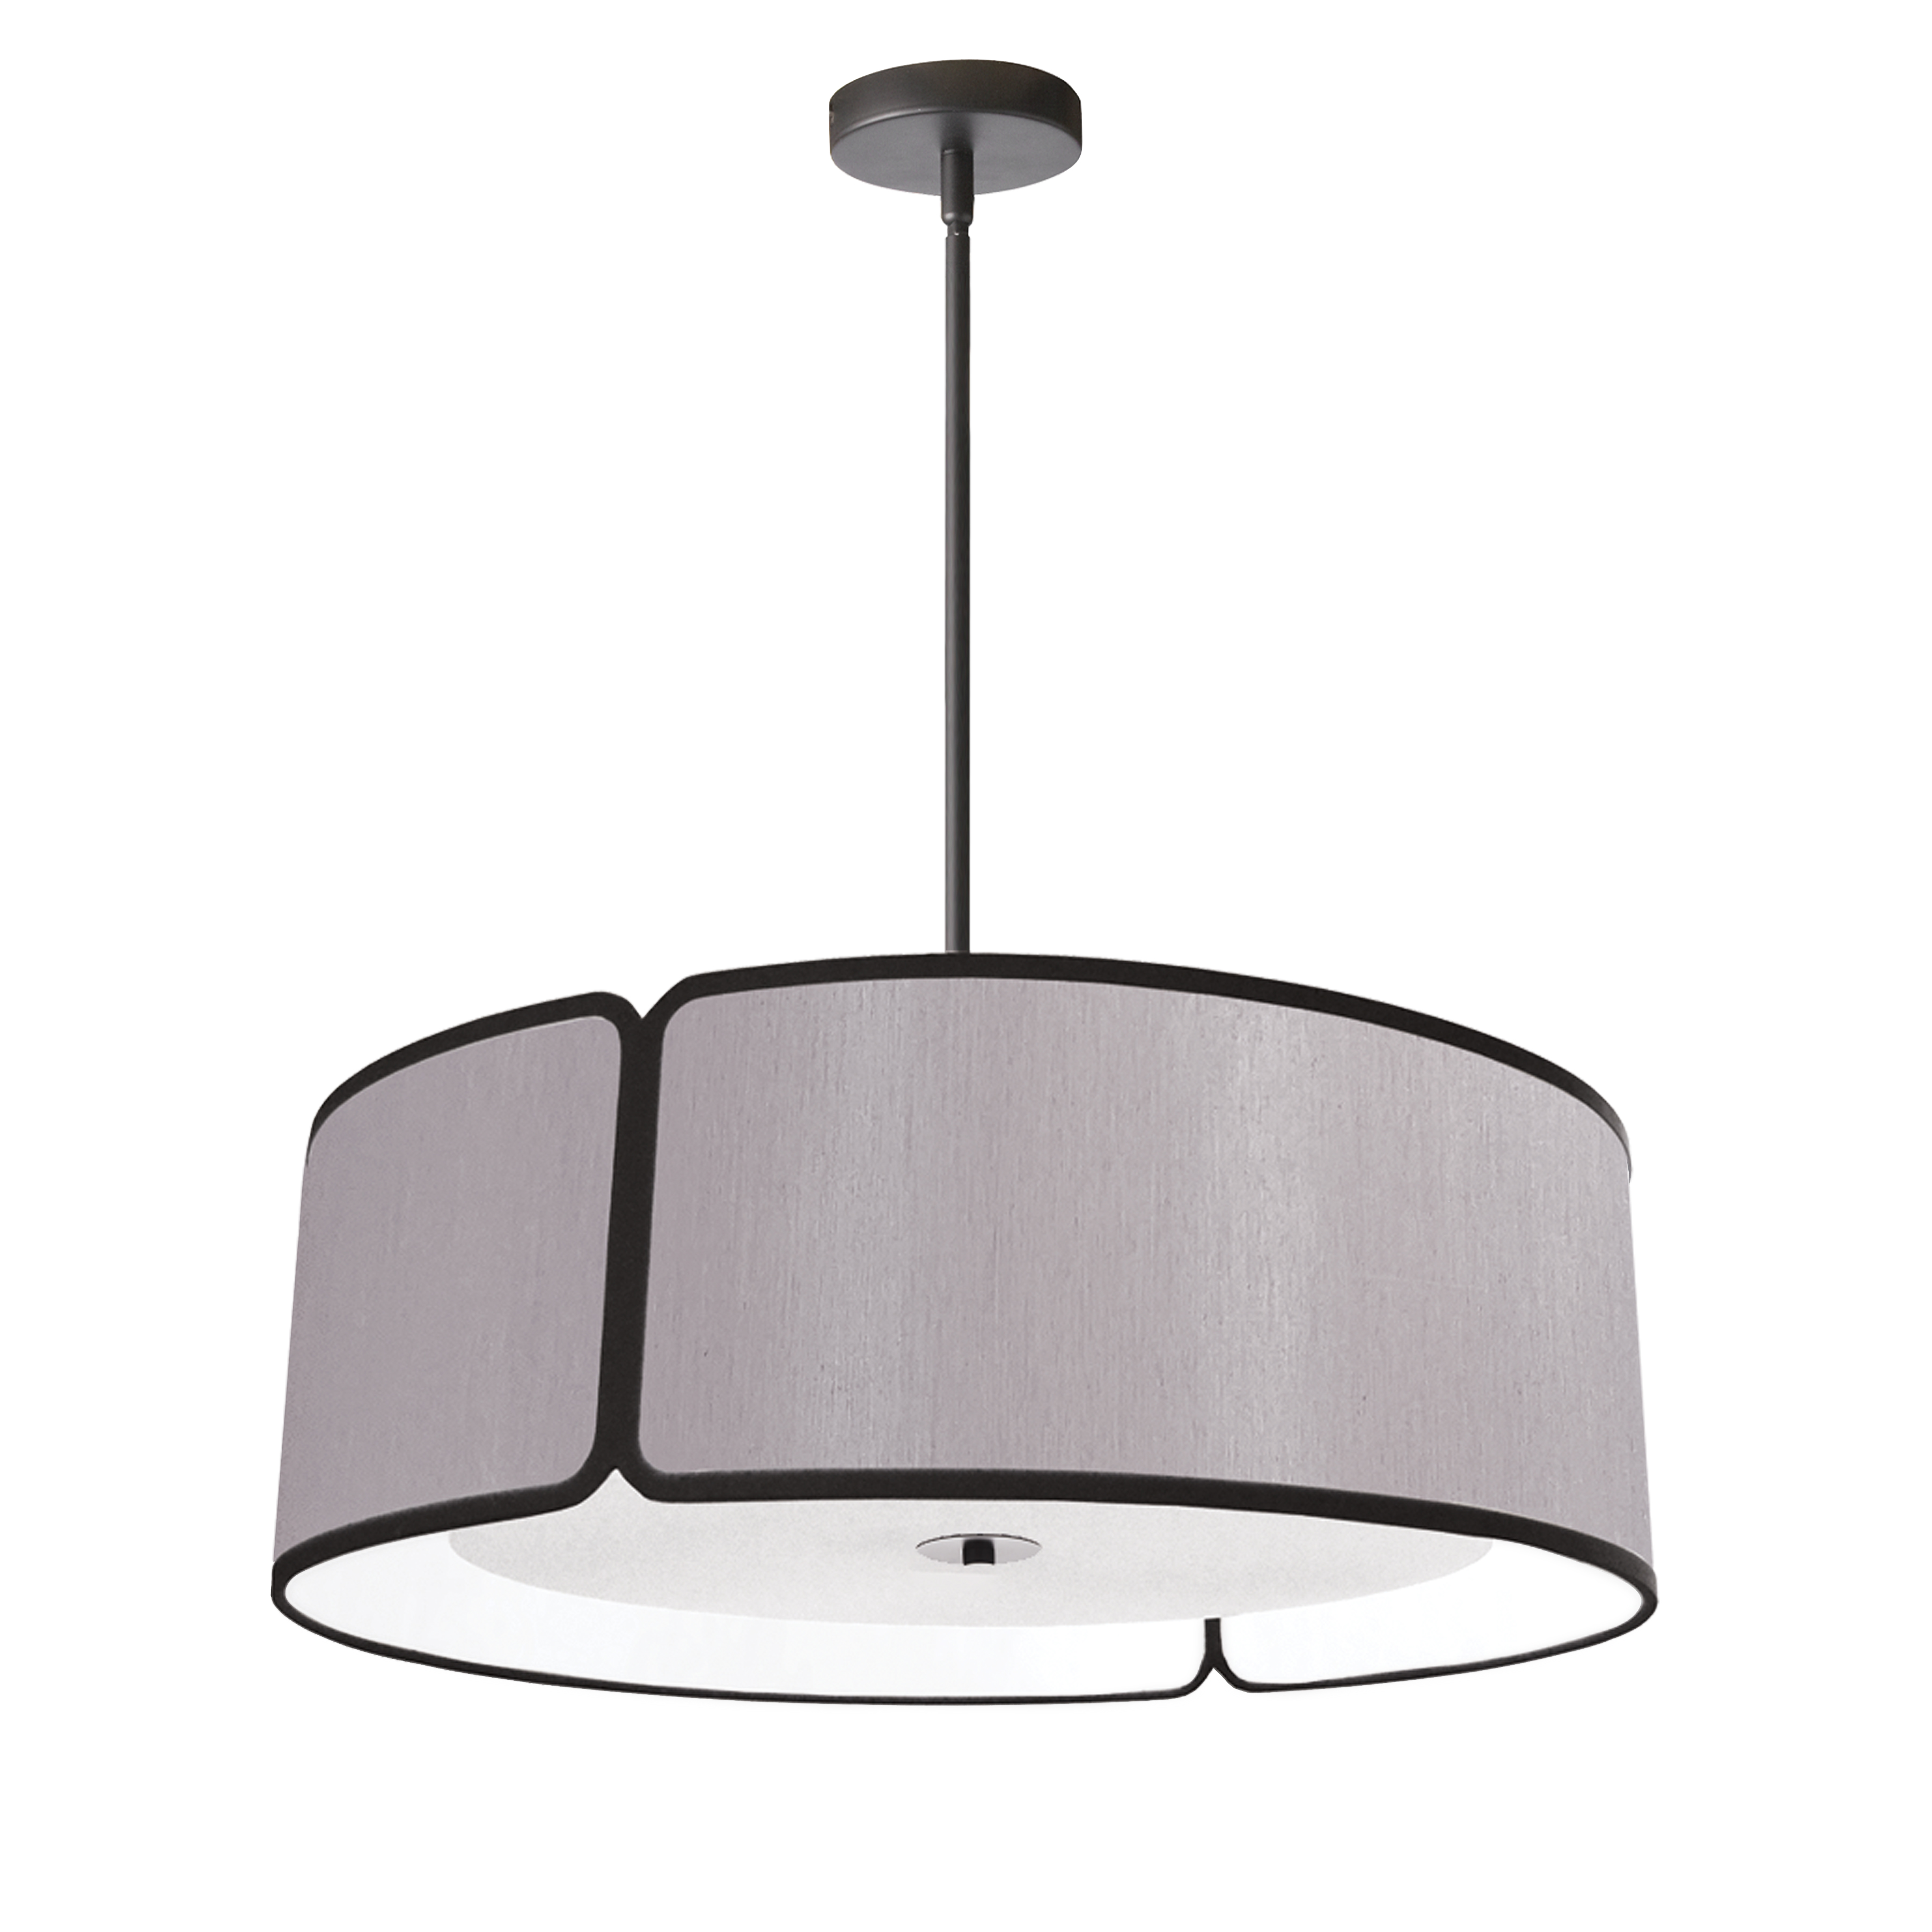 3LT Notched Drum Pendant Bk, Grey Shade & Diffuser